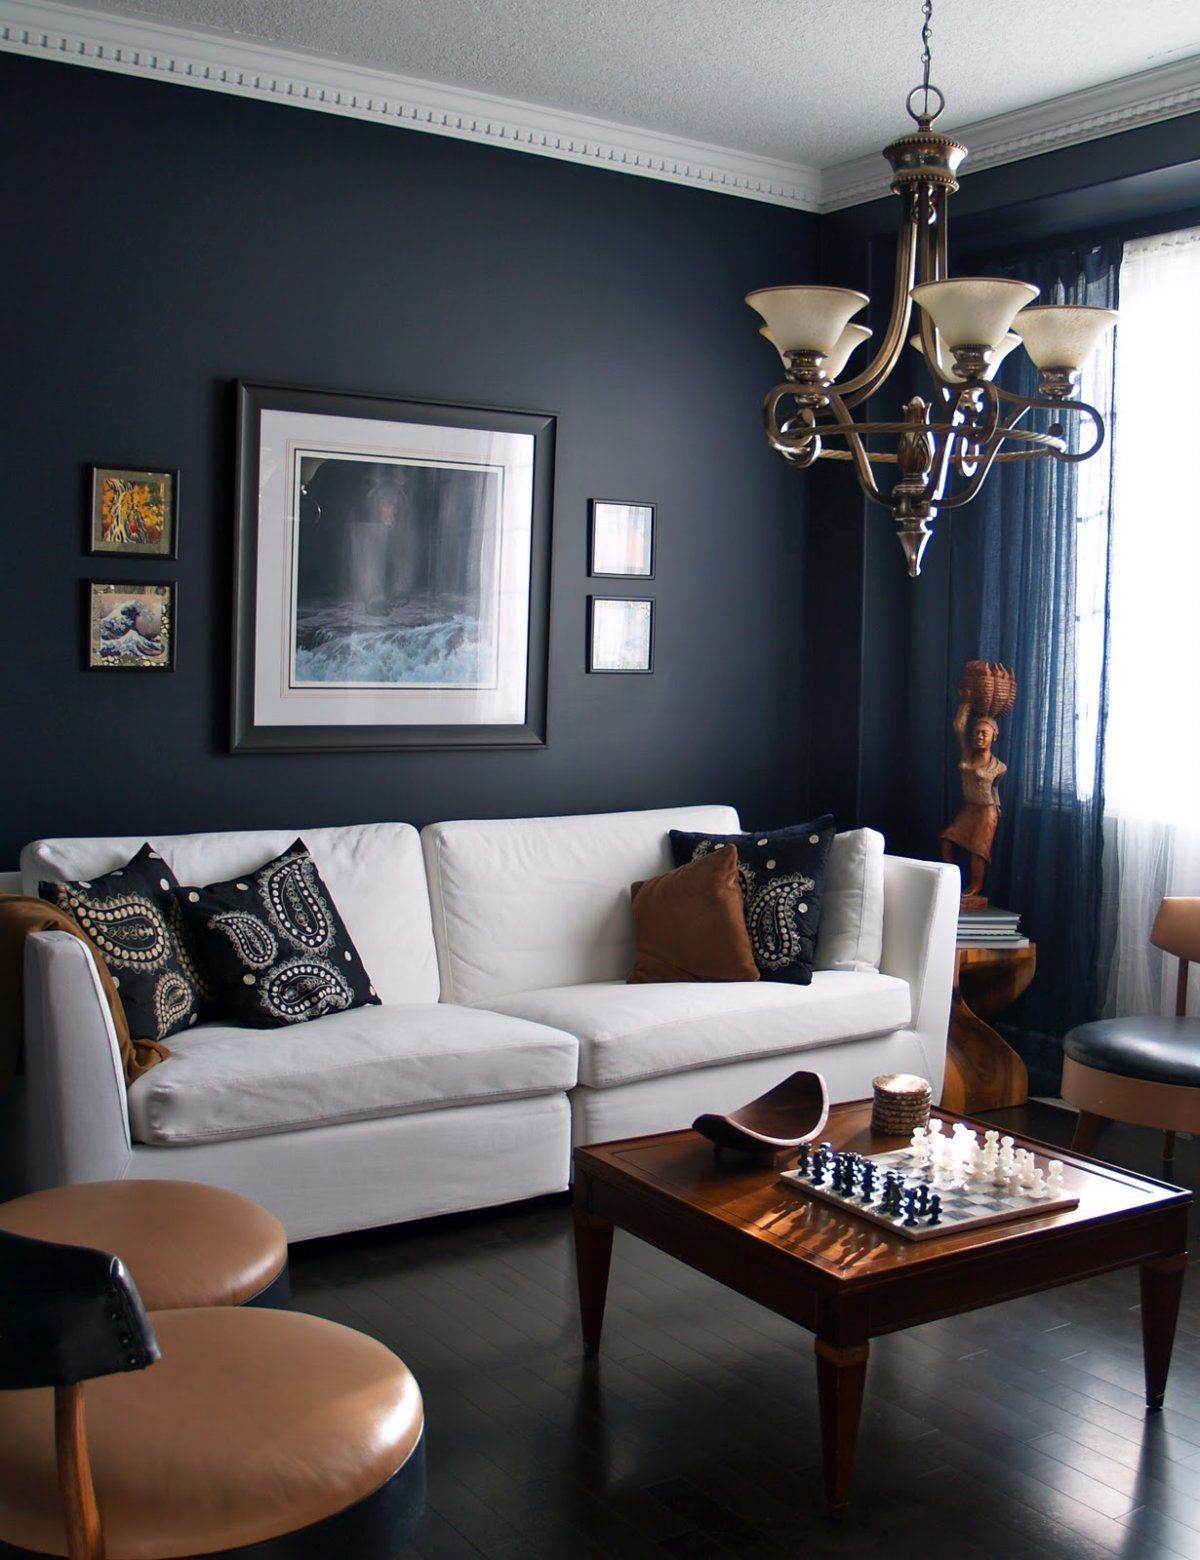 15 Beautiful Dark Blue Wall Design Ideas Brown Living Room